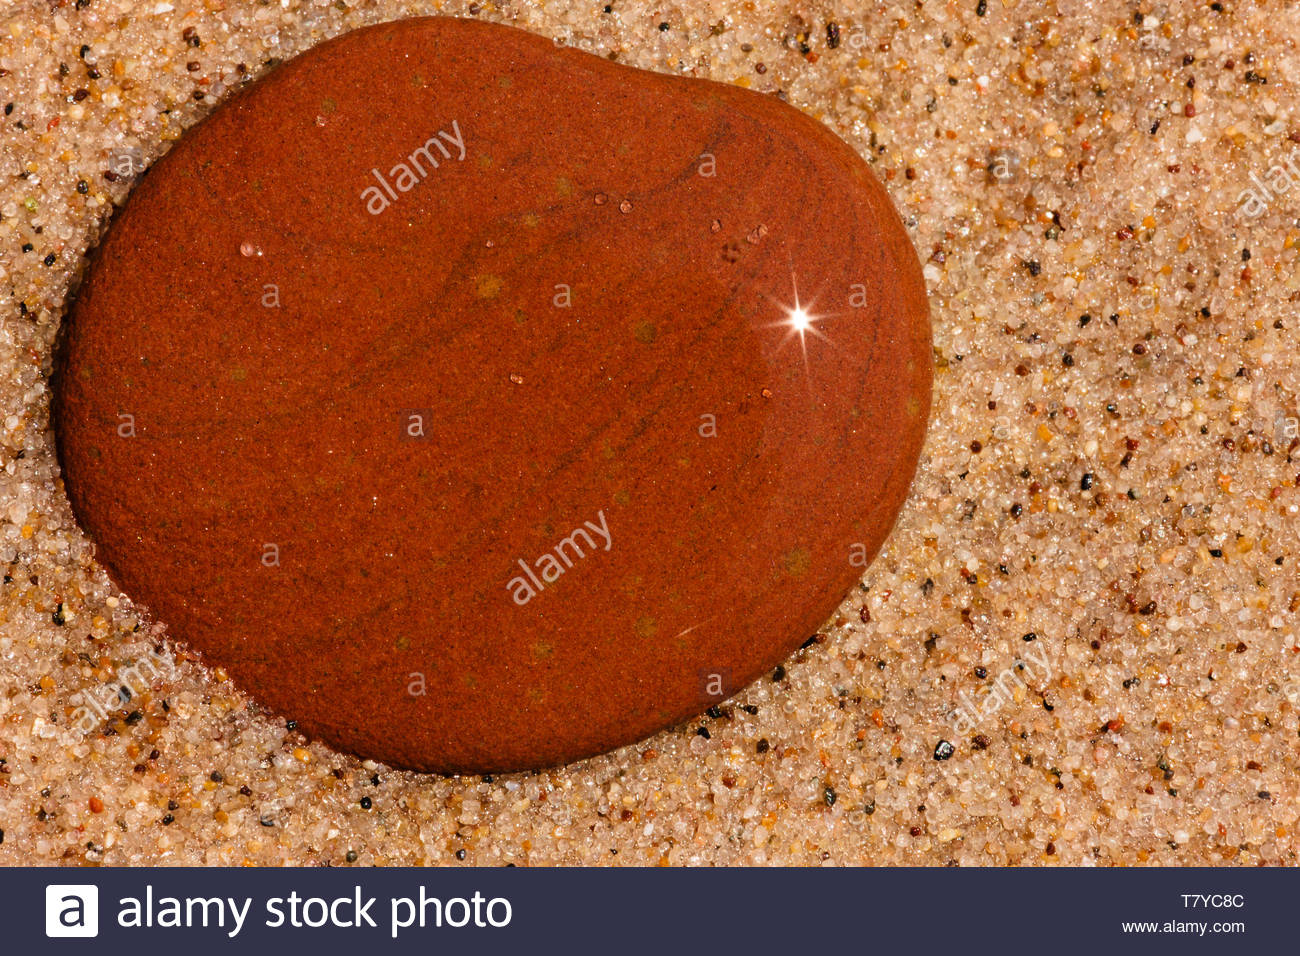 Sunstar bounces off a wet stone on the beach at Kohler-Andrae State Park, Sheboygan, Wisconsin in late July - Stock Image